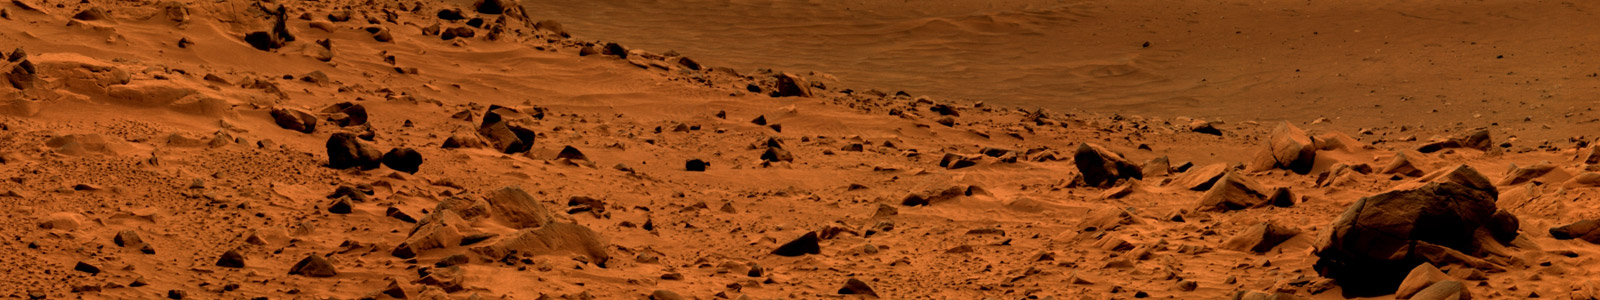 home_slides_1600x300_mars-bonneville-crater